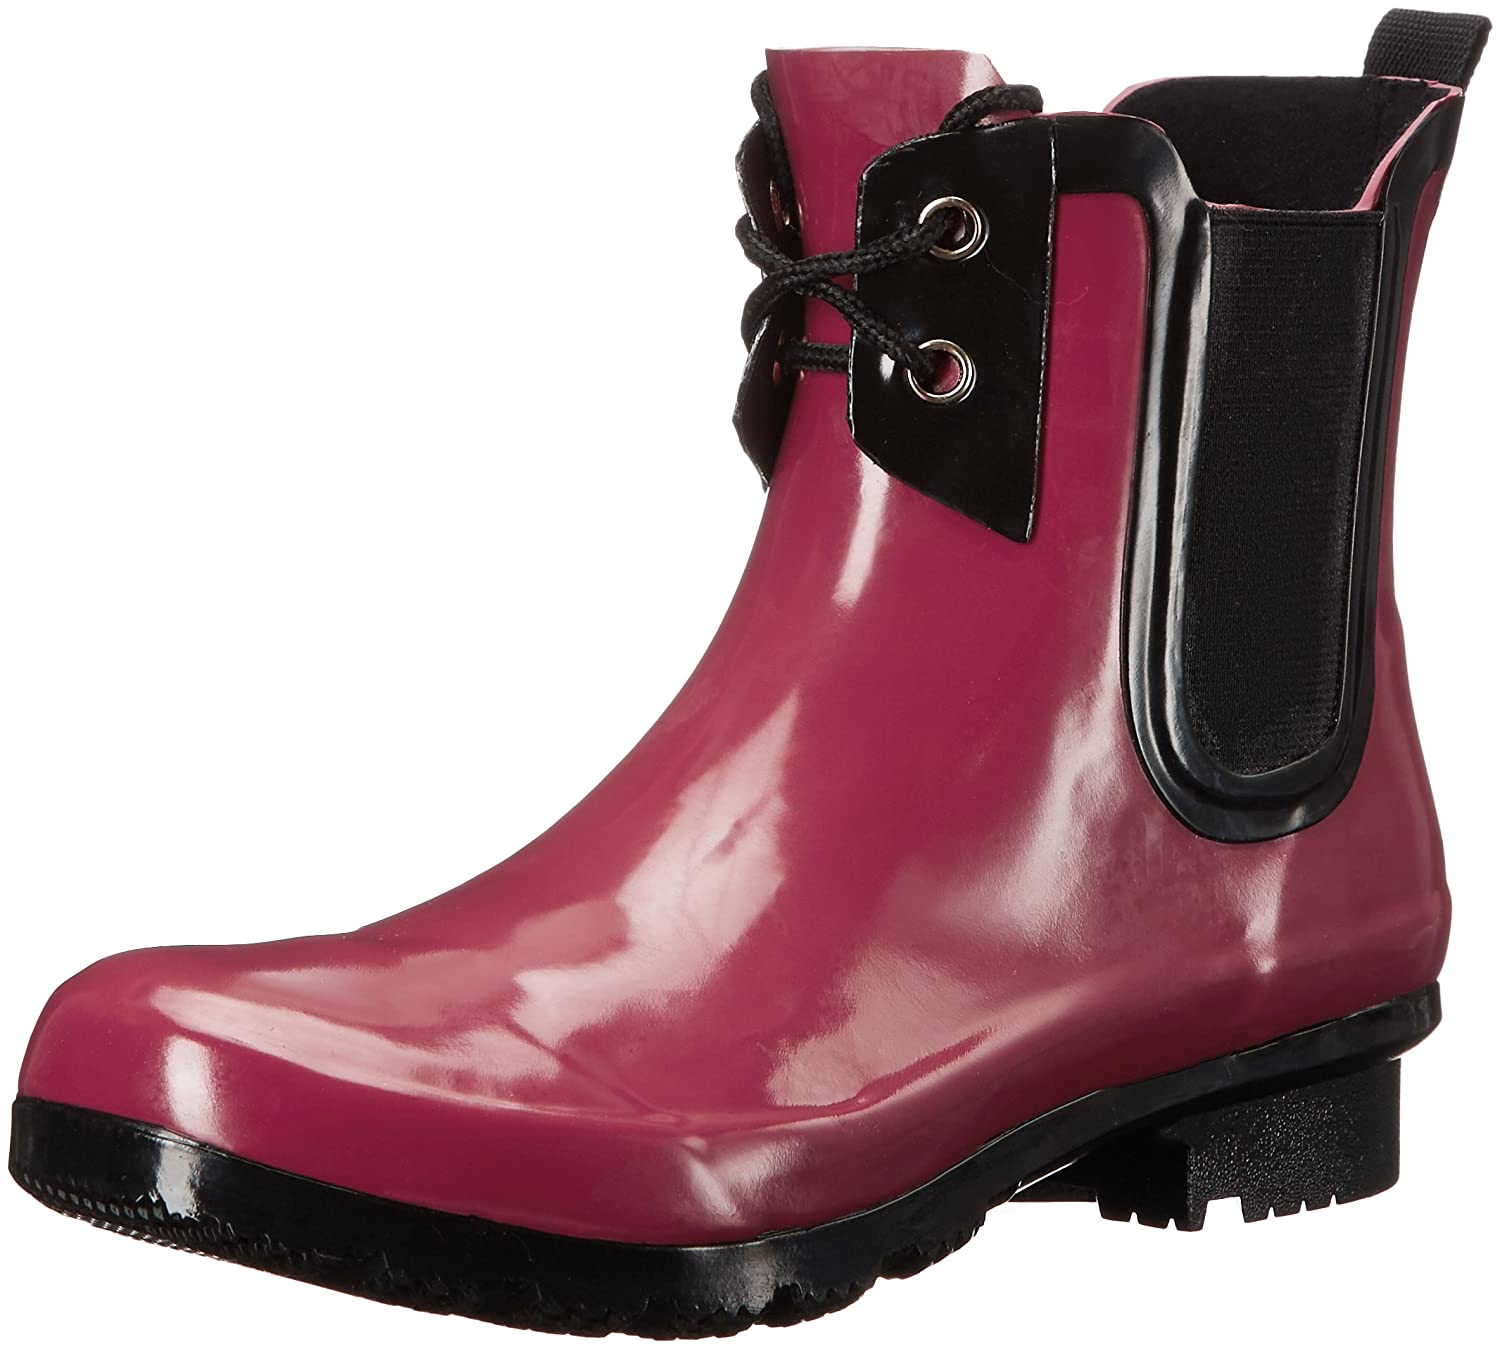 Roma Boots Women's Chelsea Lace-up Rain Boots B01L2WON0C 9 B(M) US|Claret Lace